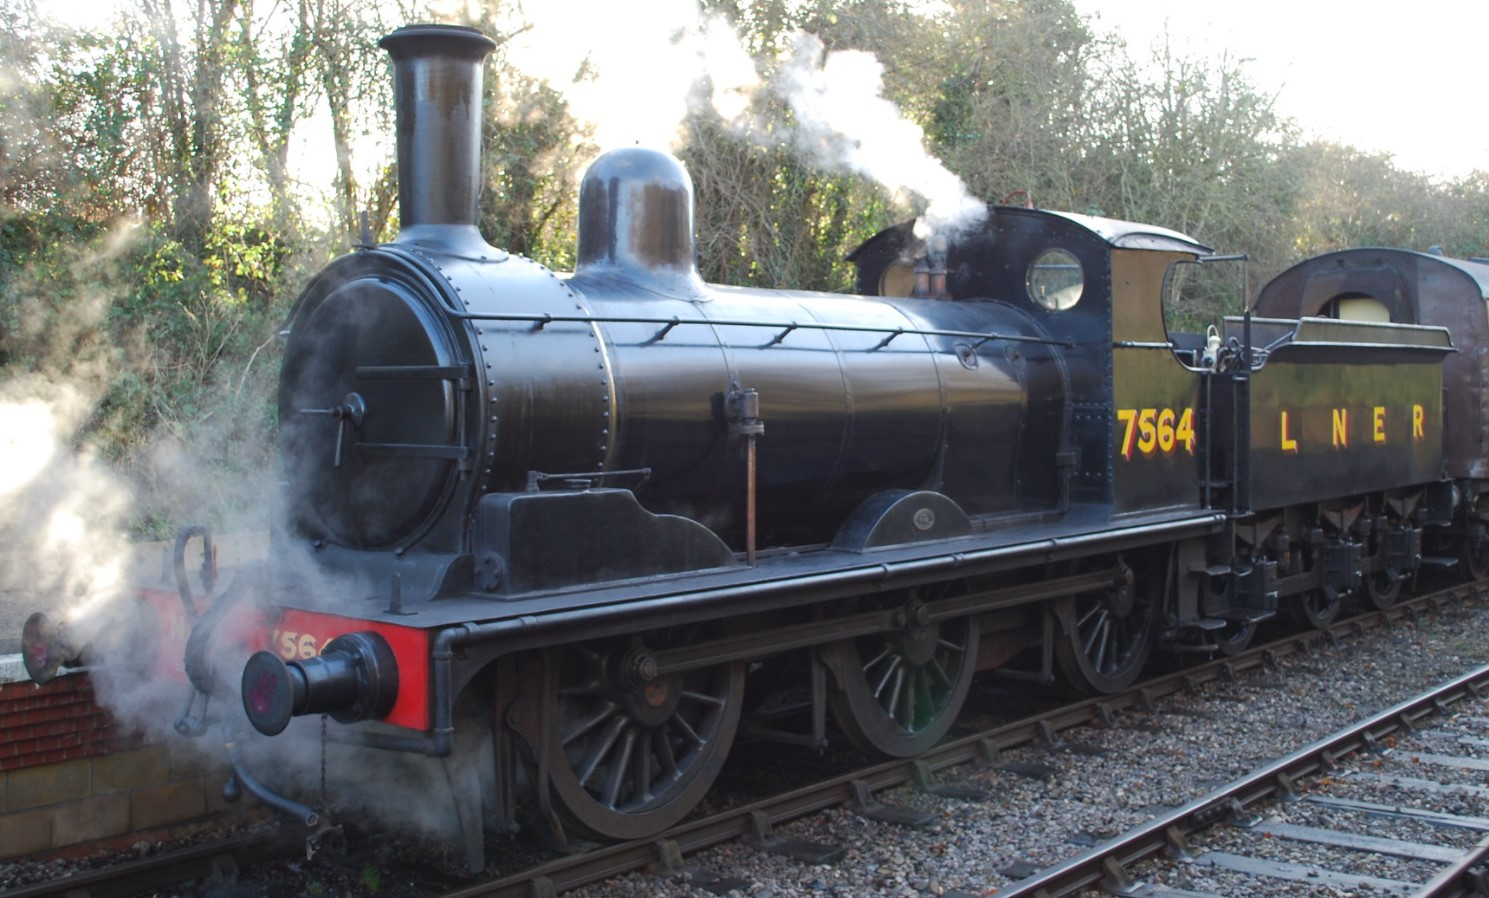 7564 at Oldland Common on the Avon Valley Railway in January 2013. ©Hugh Llewelyn